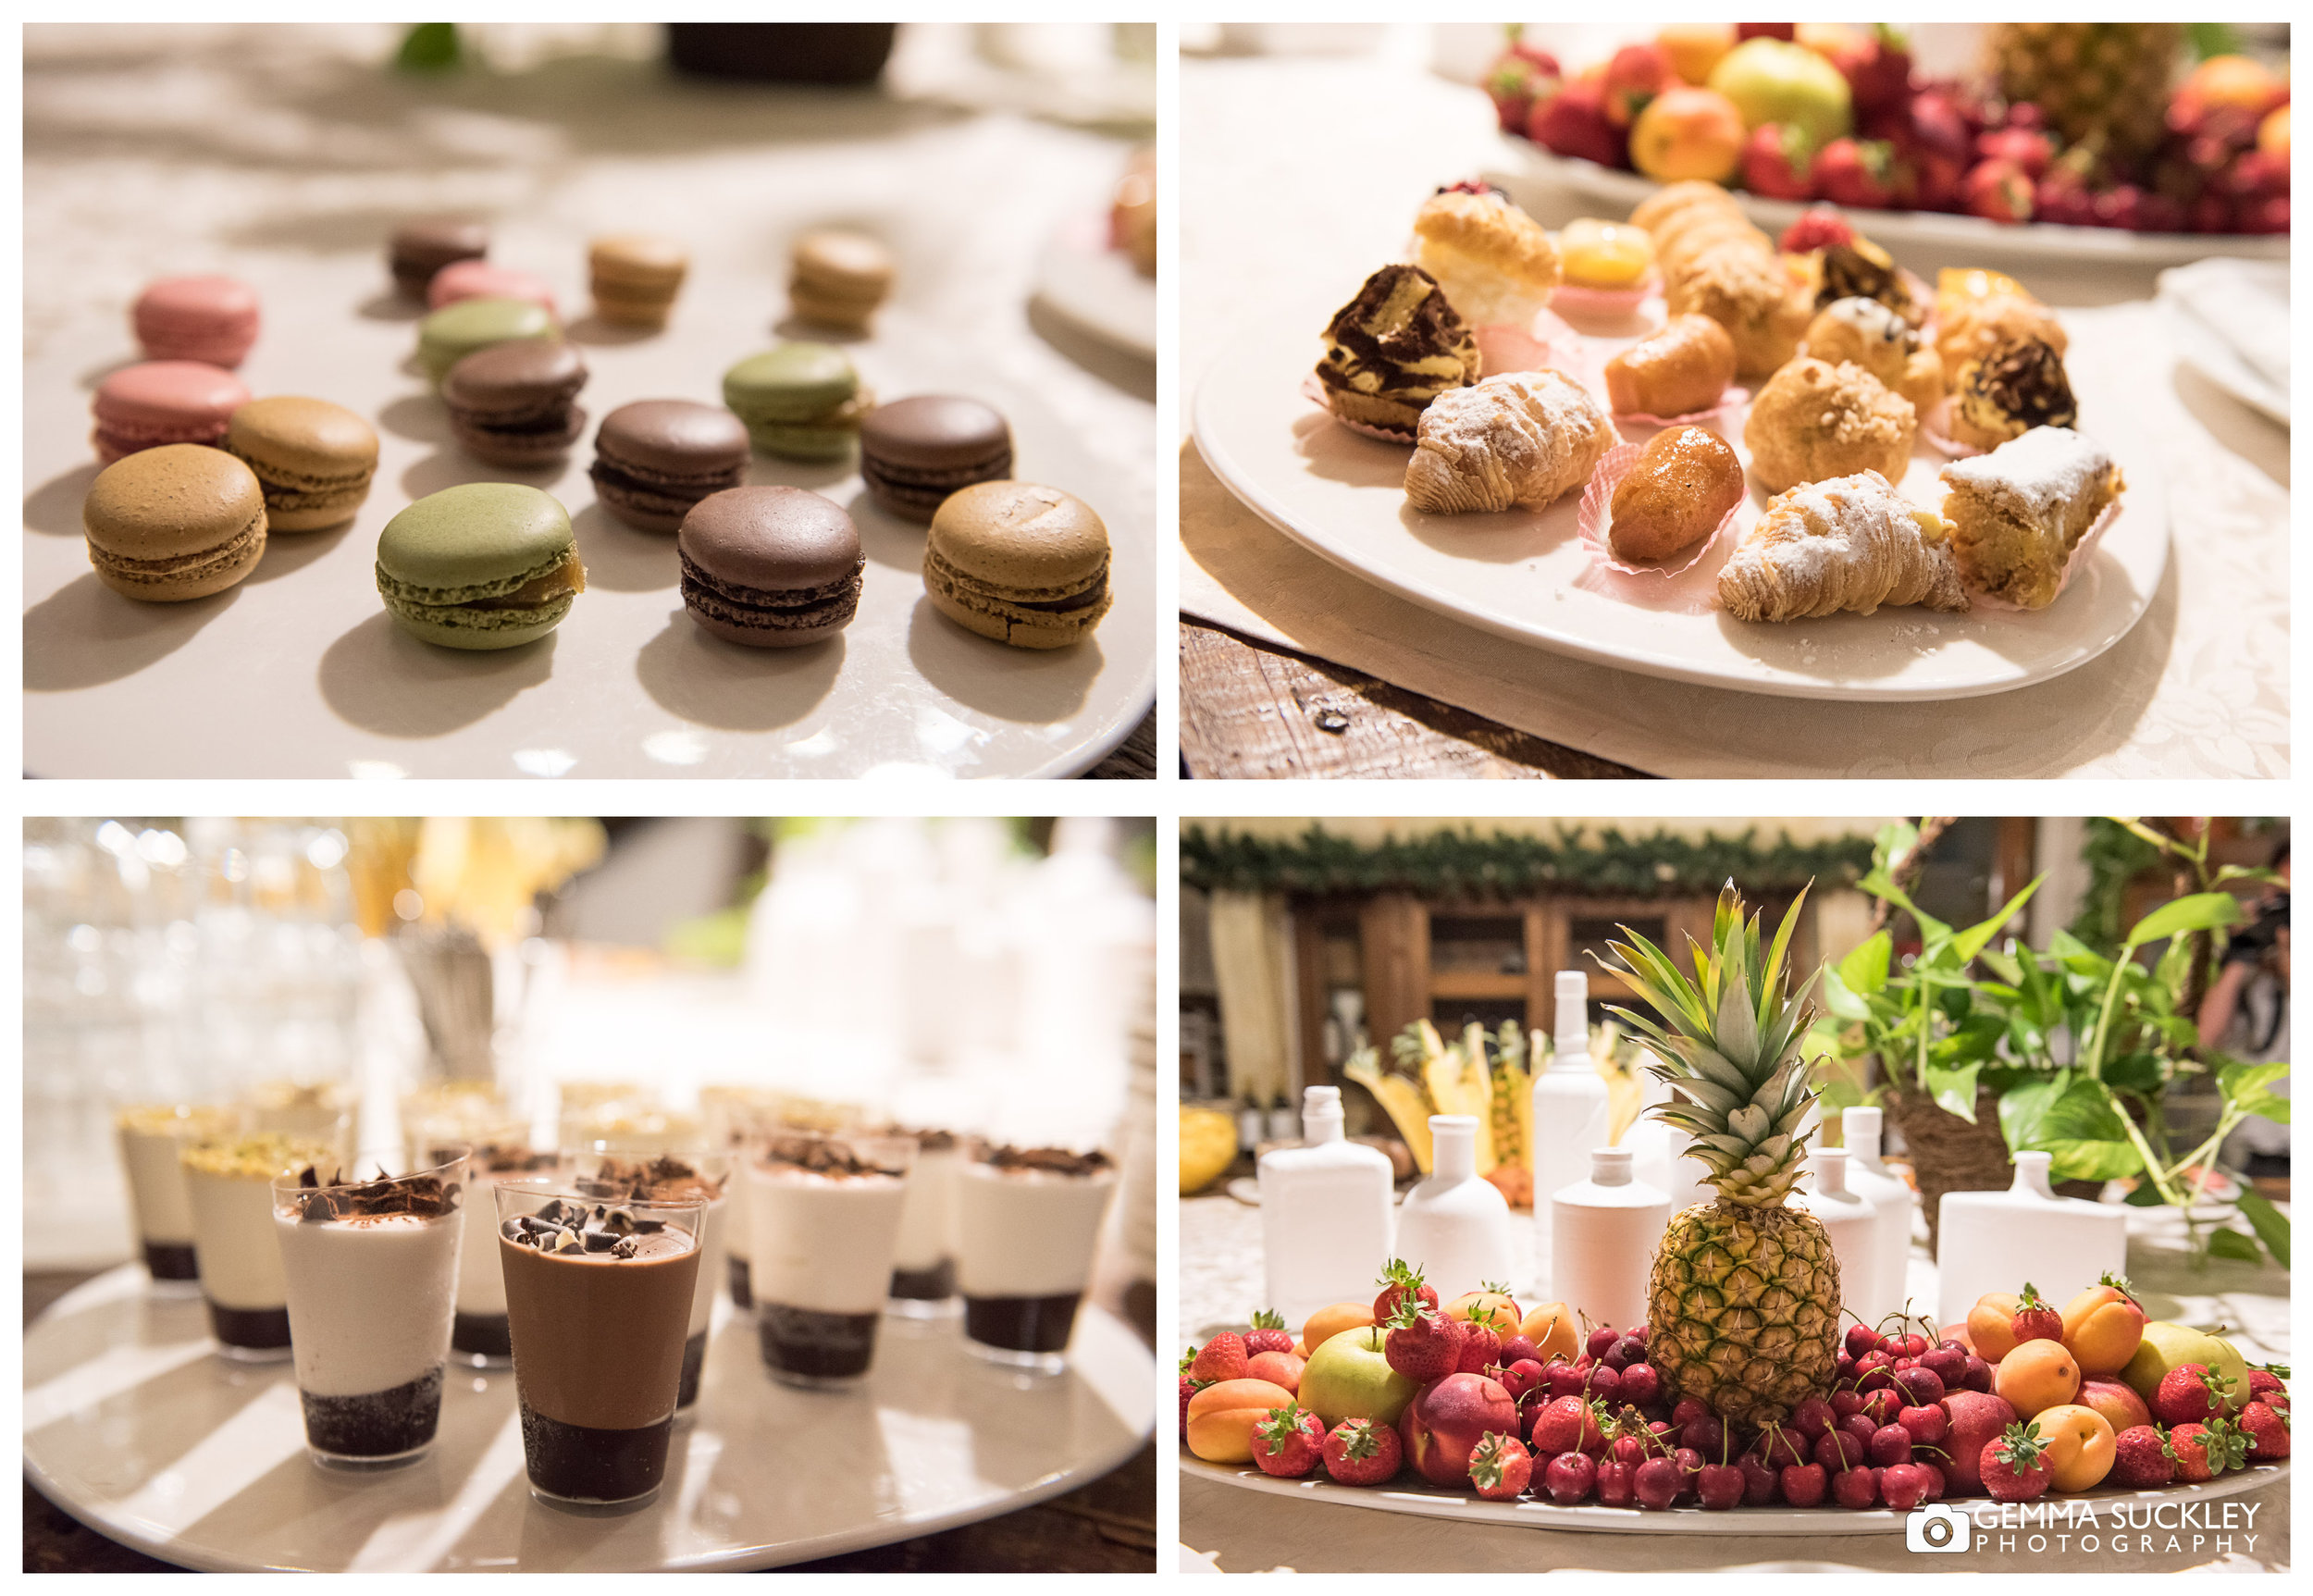 A selection of wedding desserts